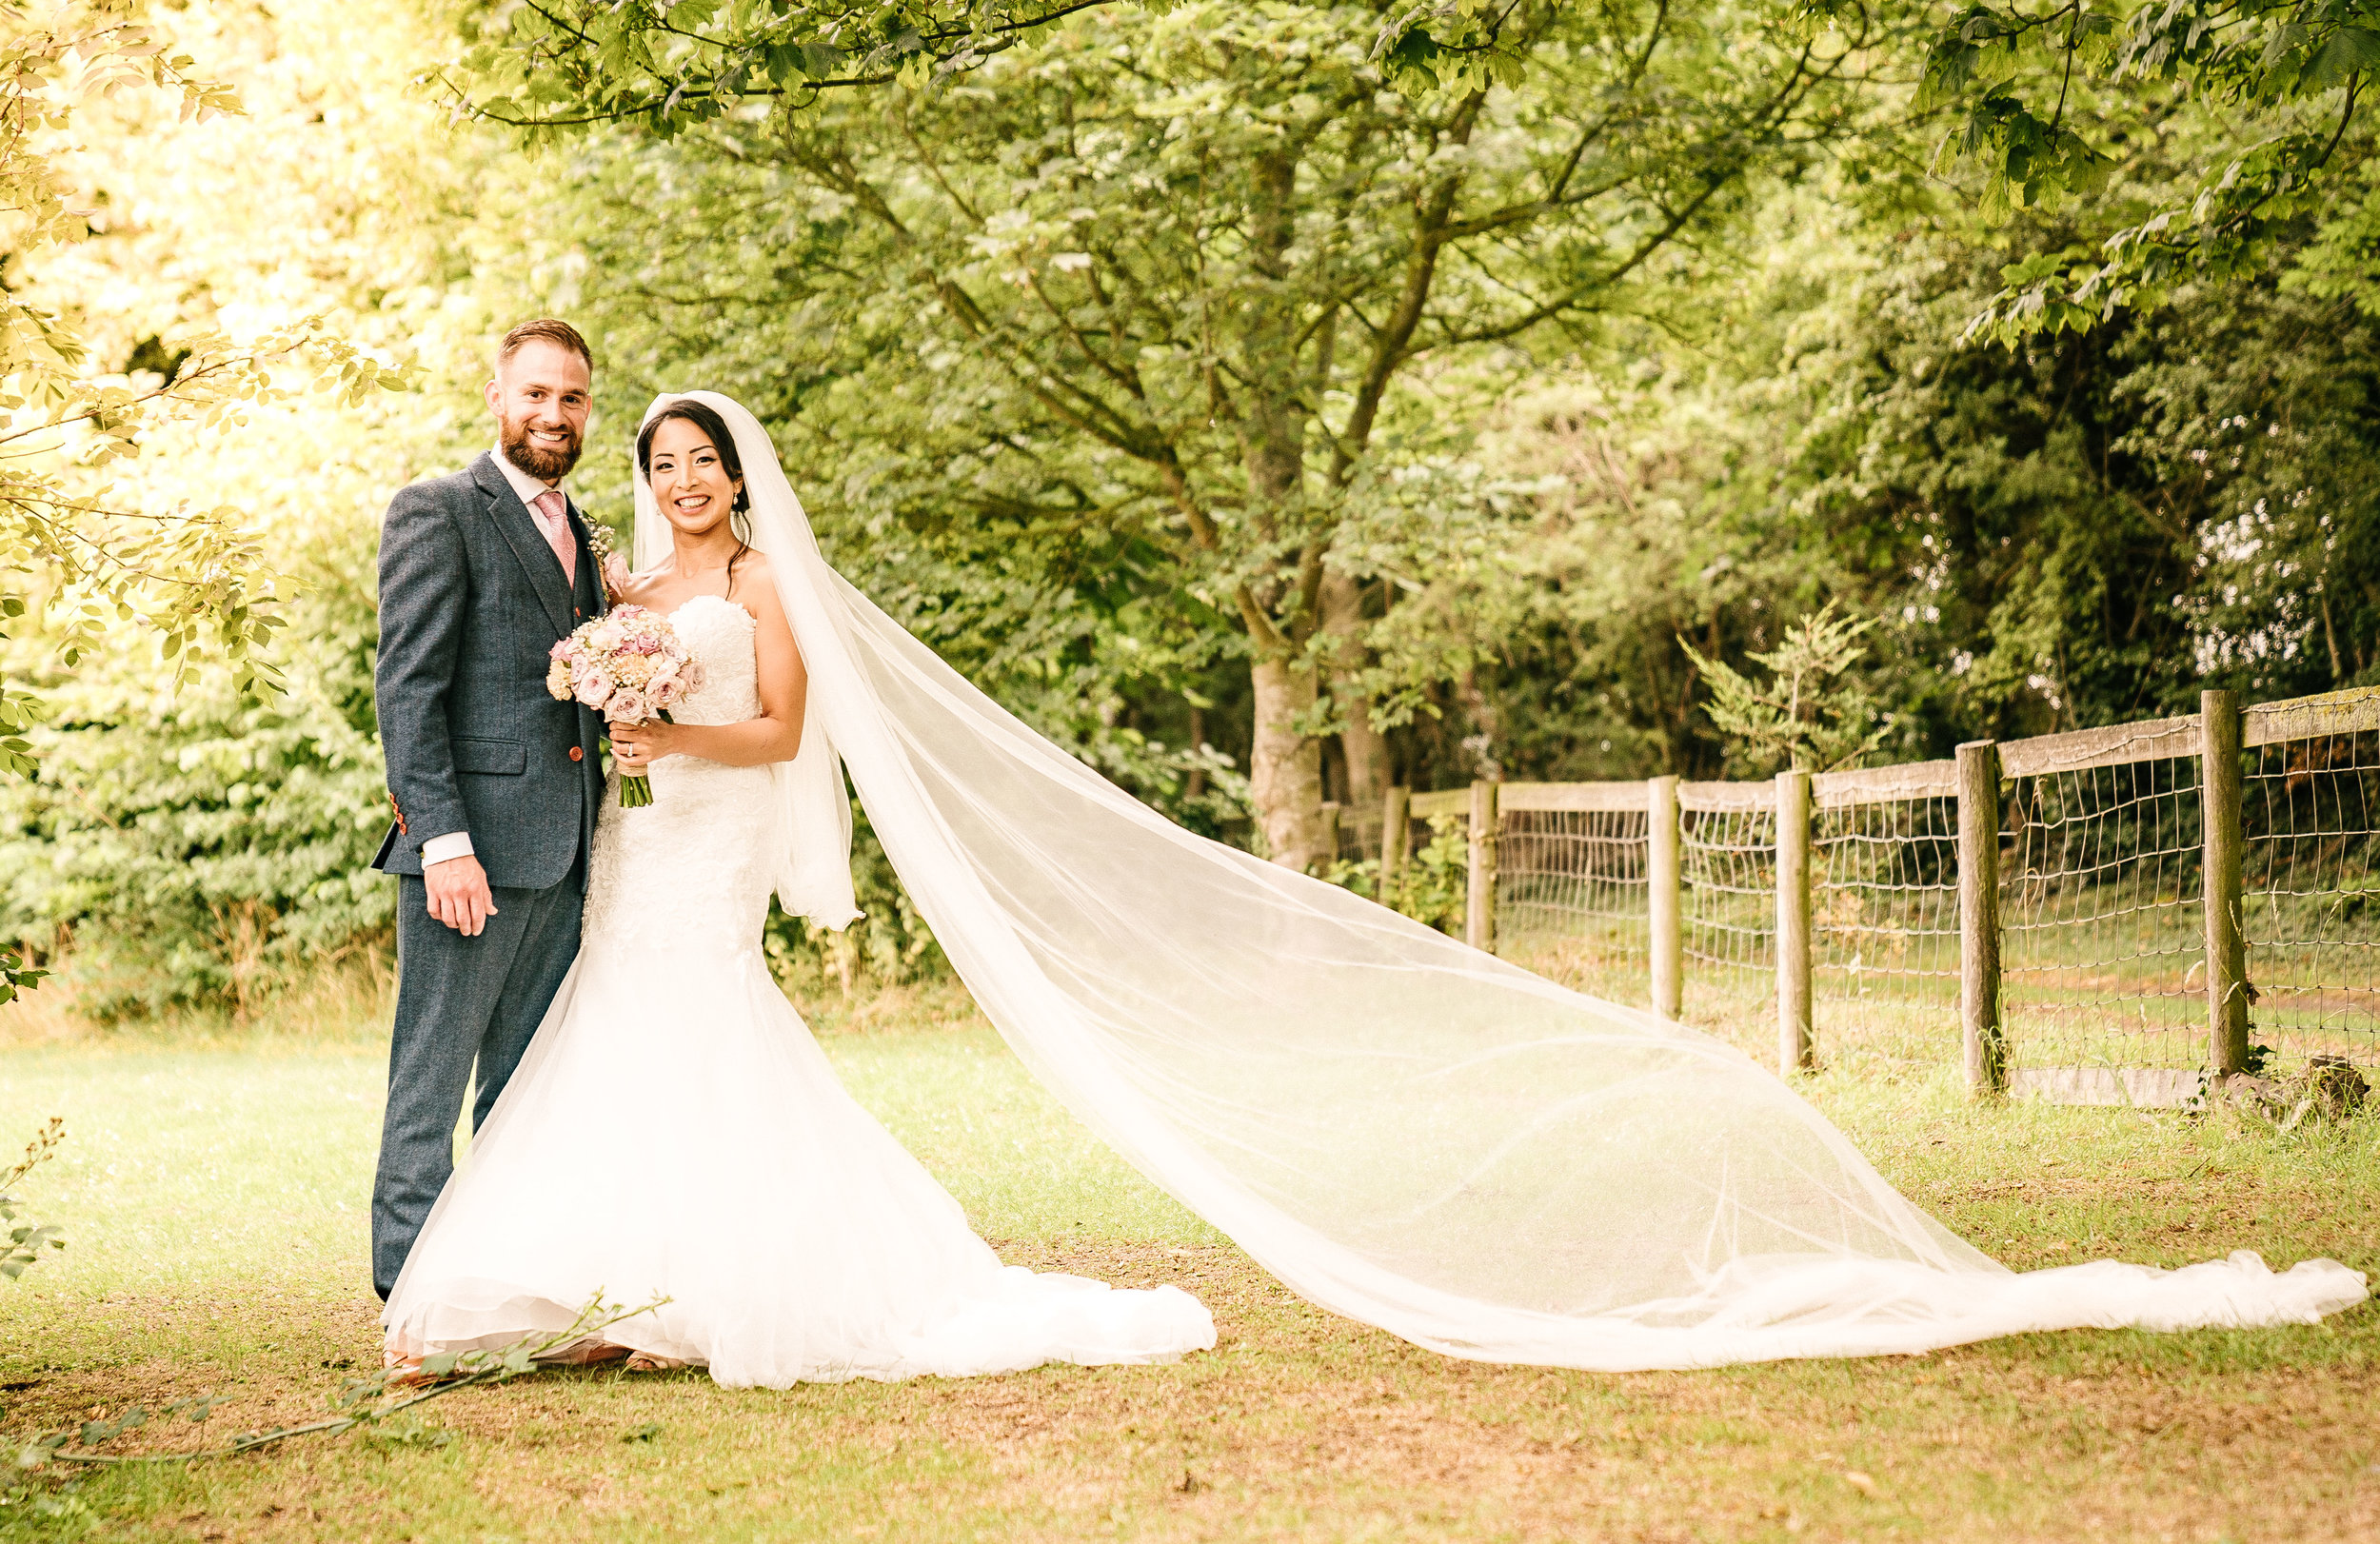 bedfordshire-london-wedding-photographer-videographer-44